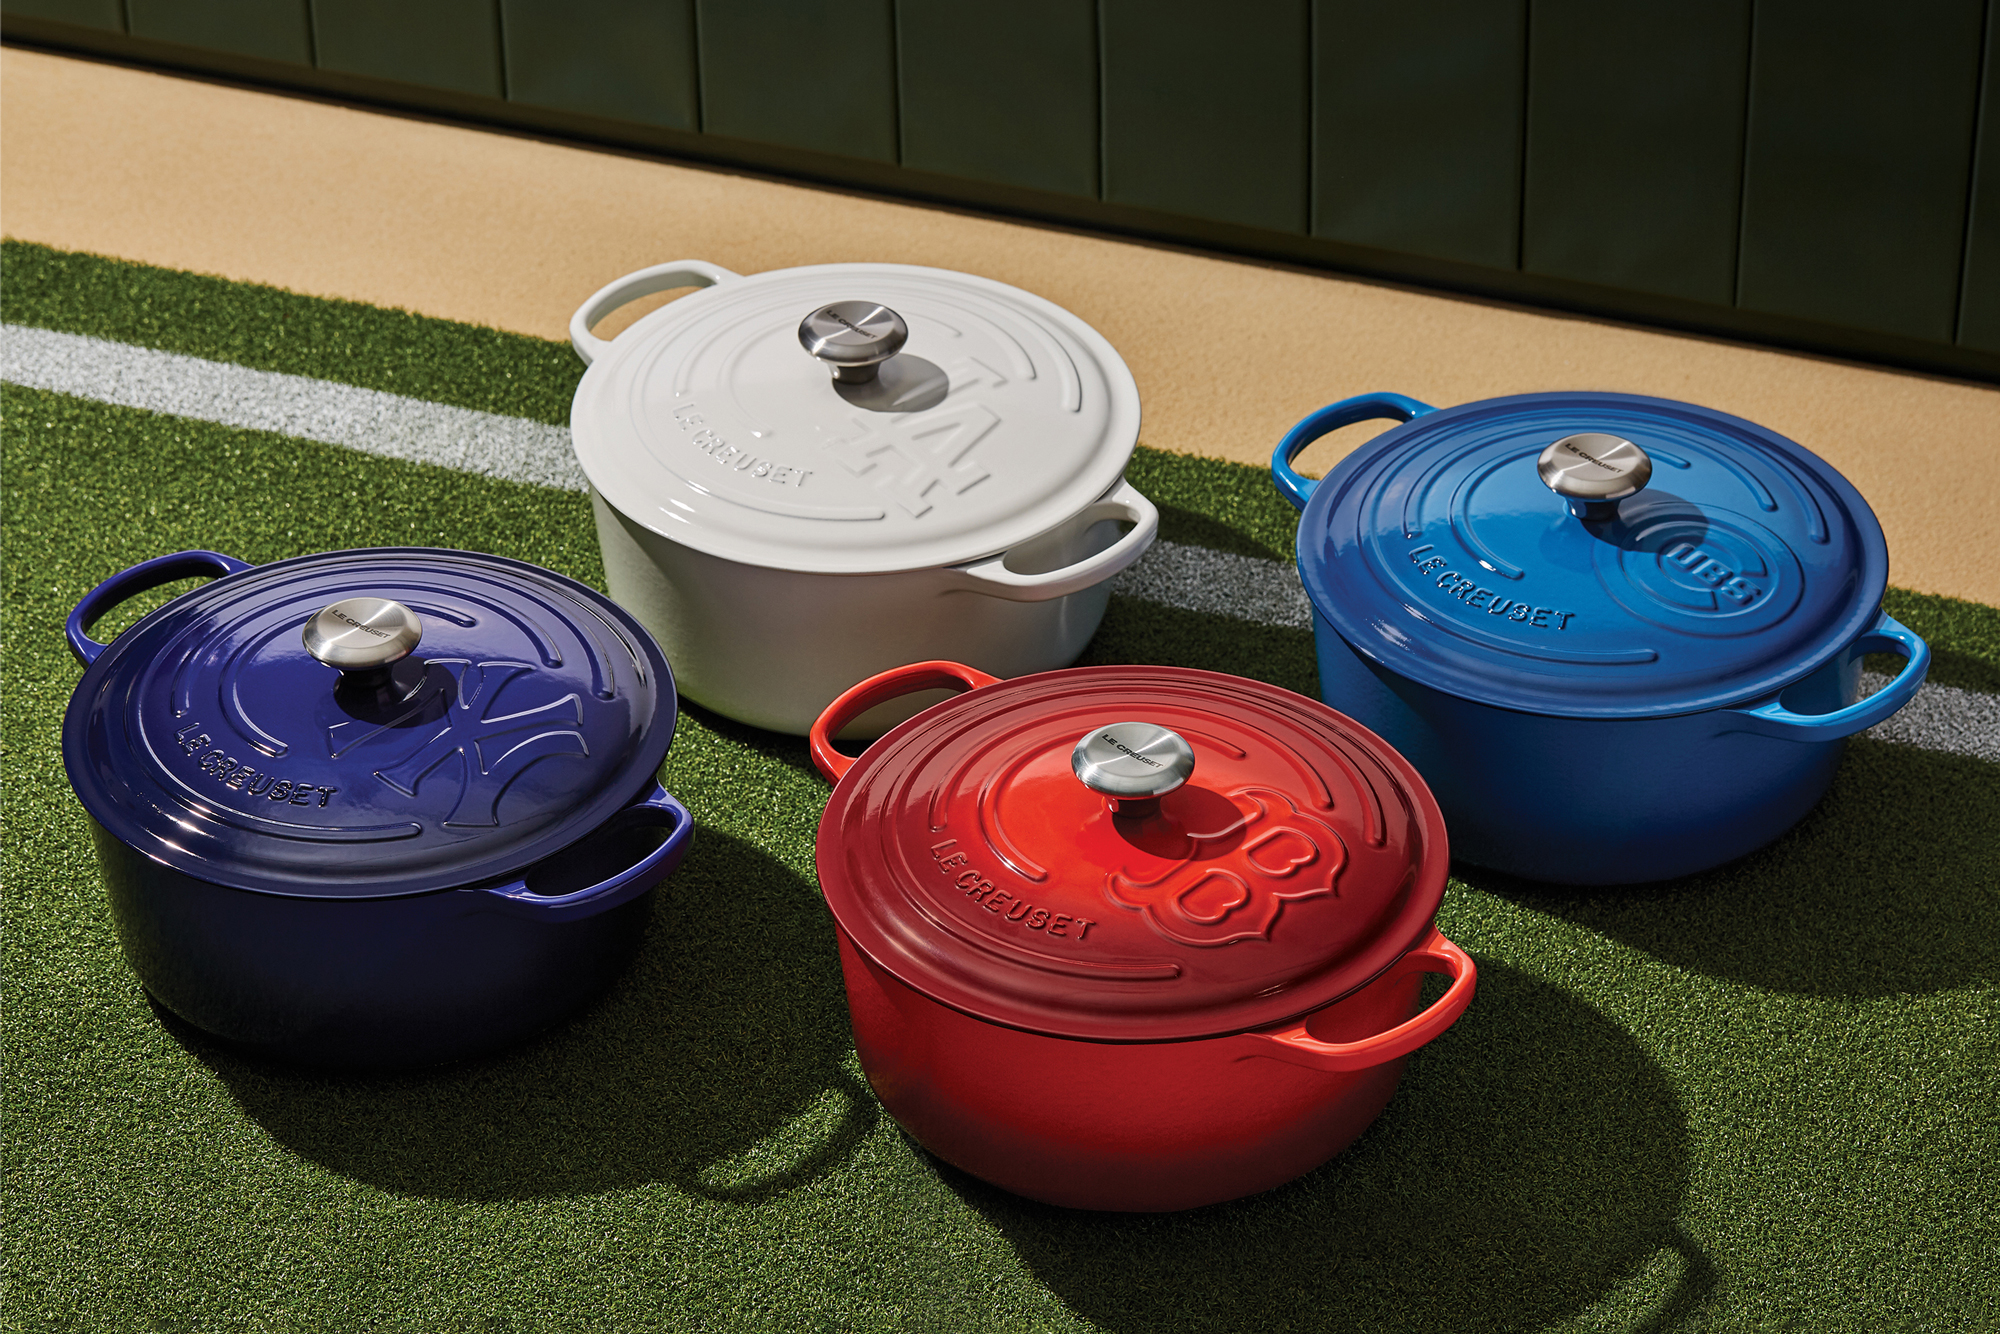 le creuset mlb signature series dutch ovens